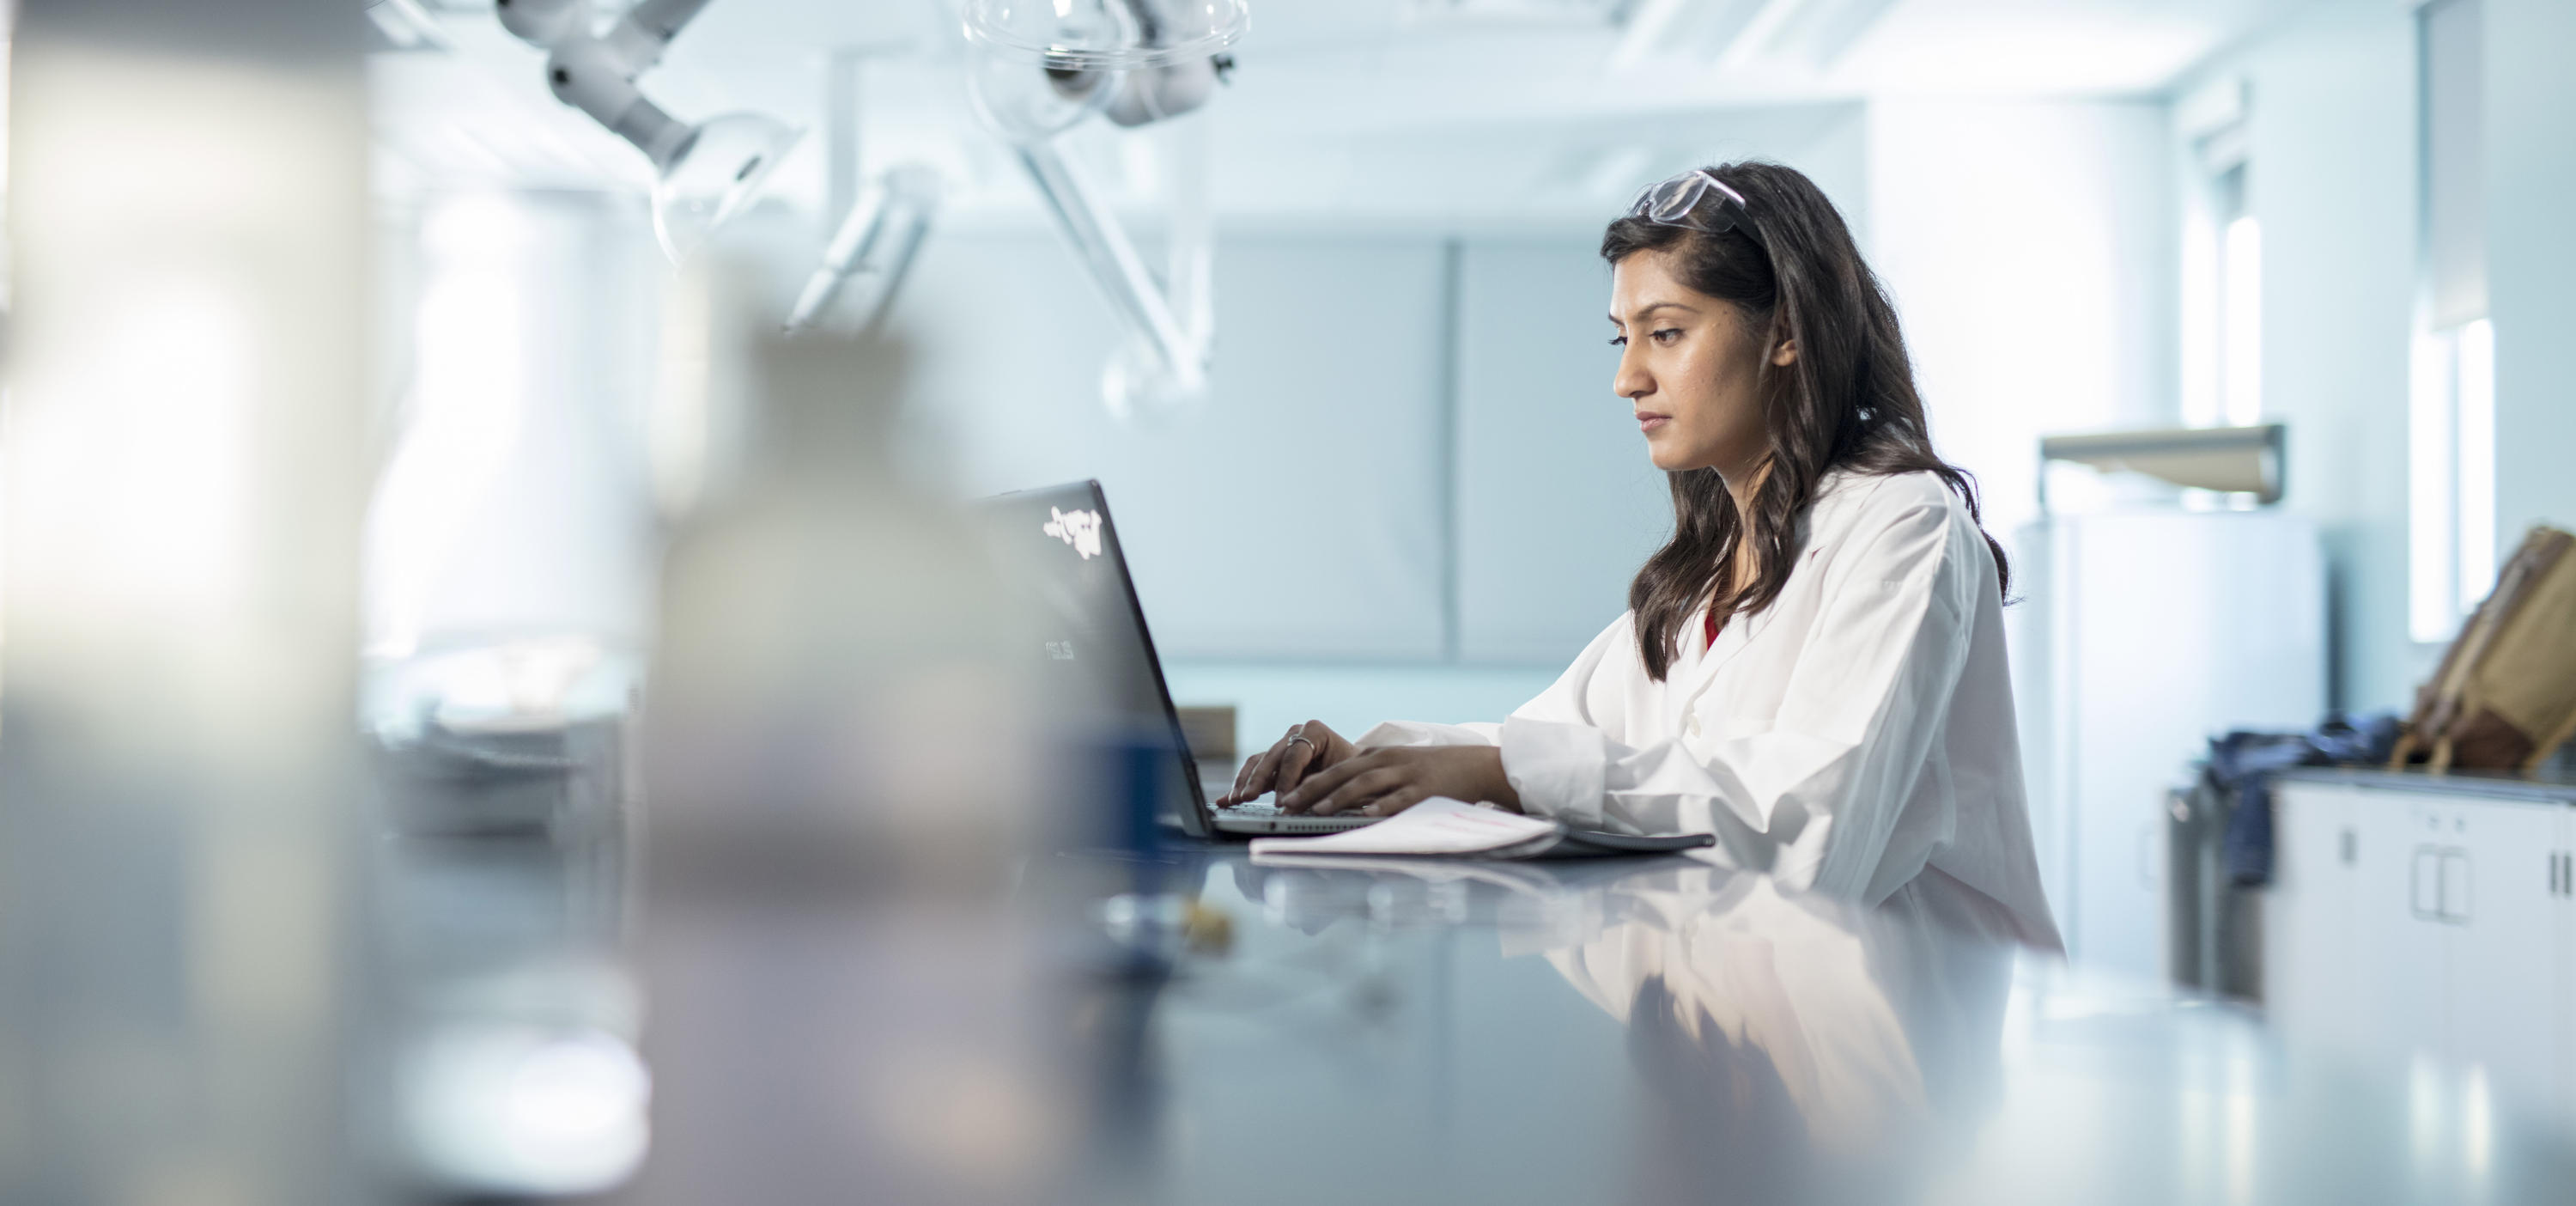 Female working on a computer while sitting at a lab bench.